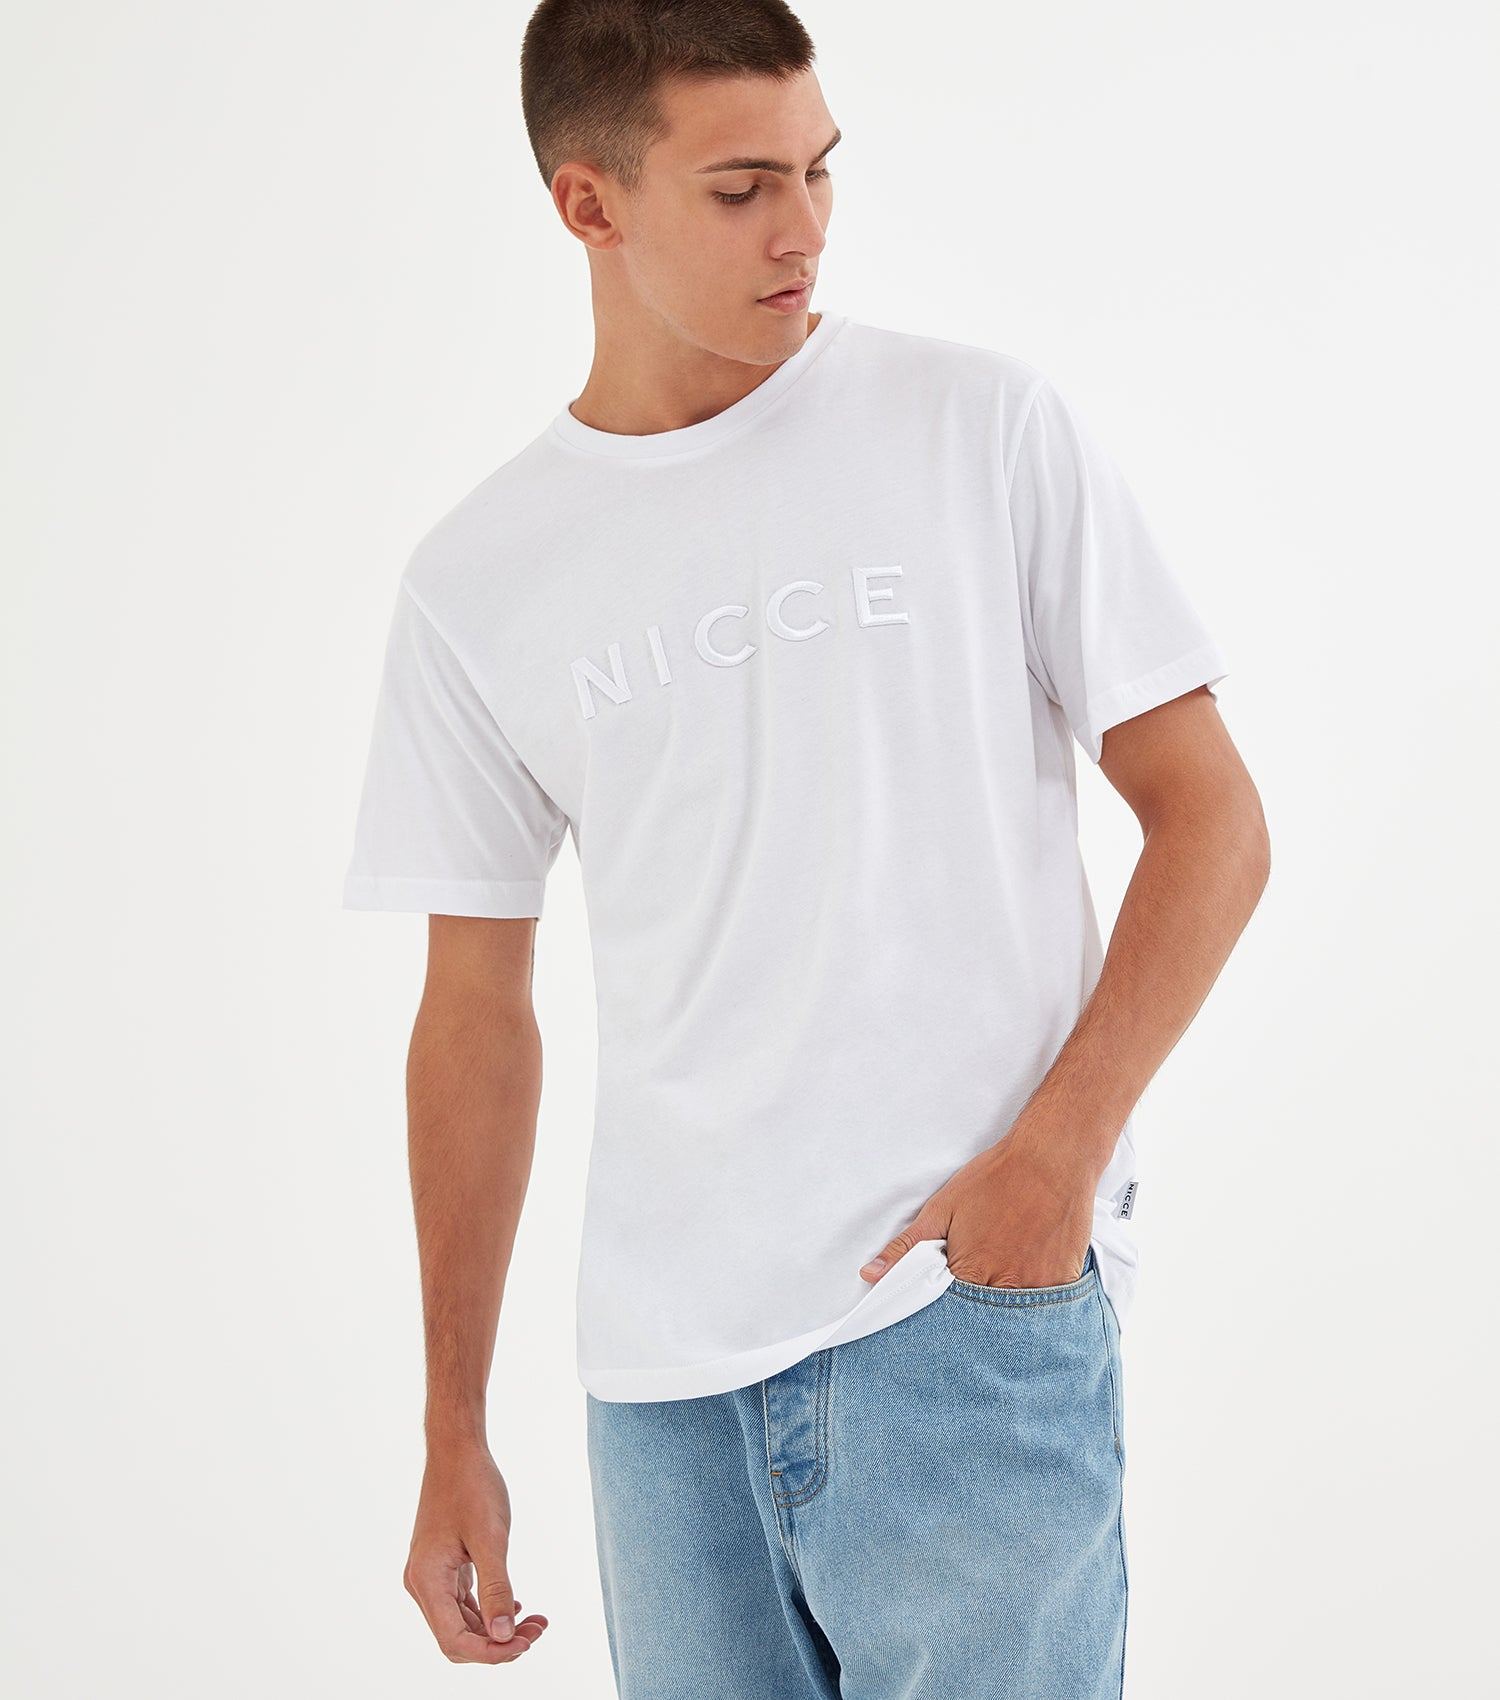 NICCE Mens Mercury T-Shirt | White, T-Shirts